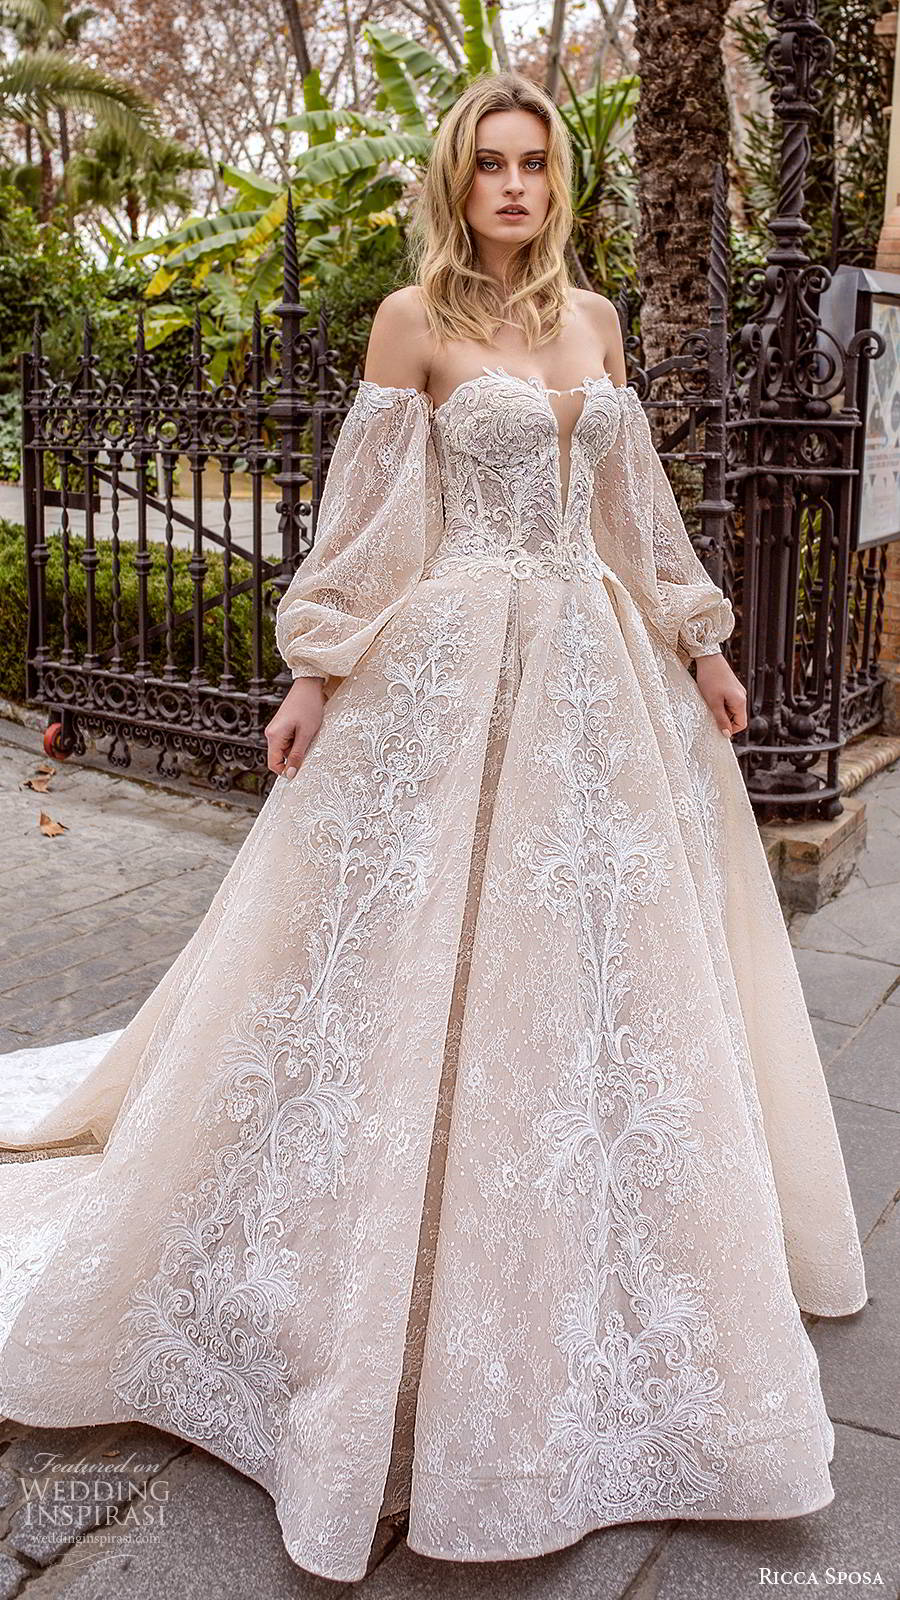 ricca sposa 2019 bridal off shoulder semi sweetheart fully embellished romantic ball gown a line wedding dress chapel train blush color (1) mv